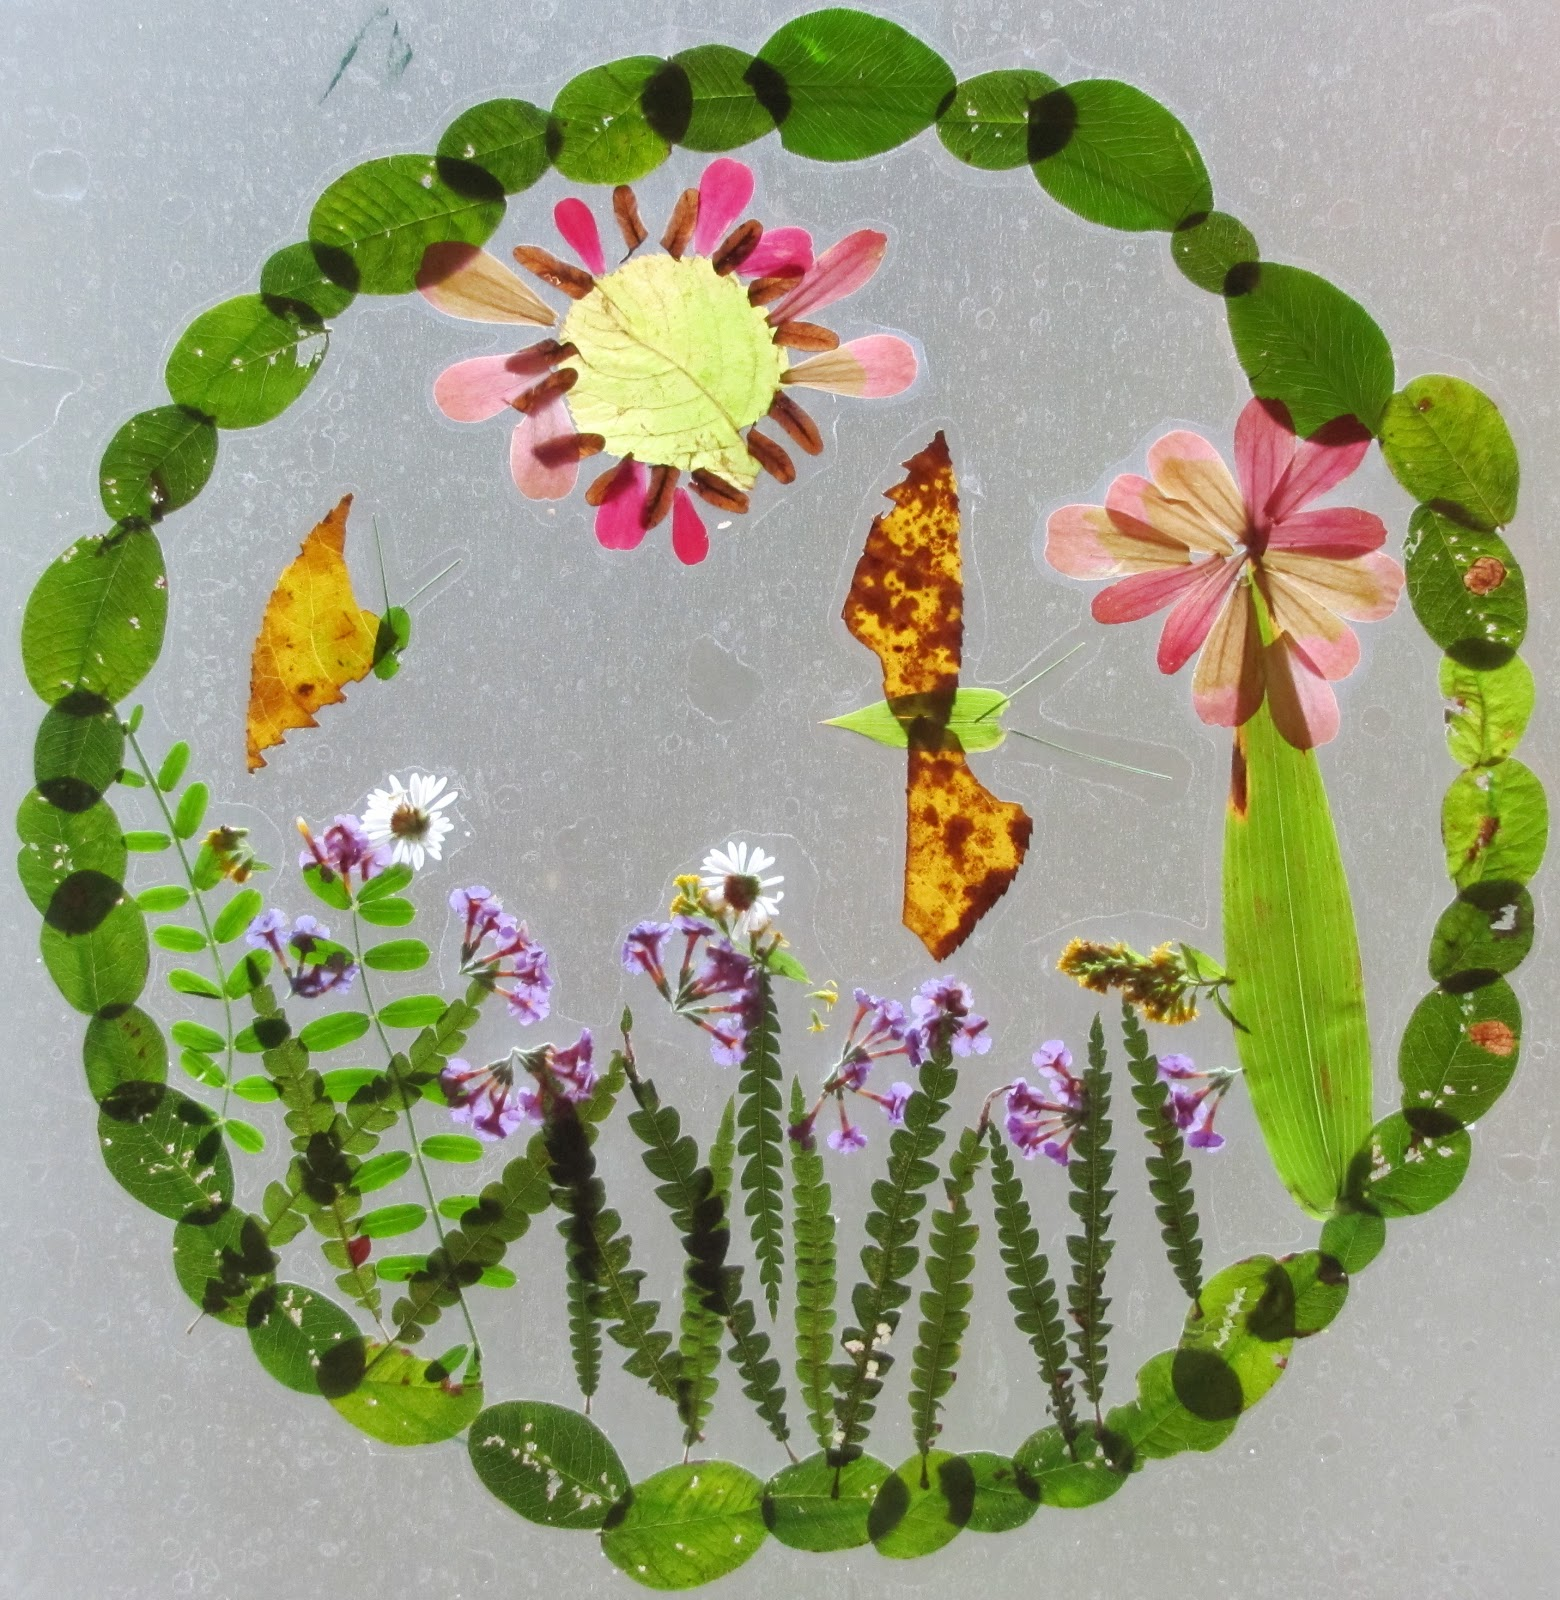 Make your own Nature Paintbrushes - Painting with flowers ... |Nature Paintings For Children